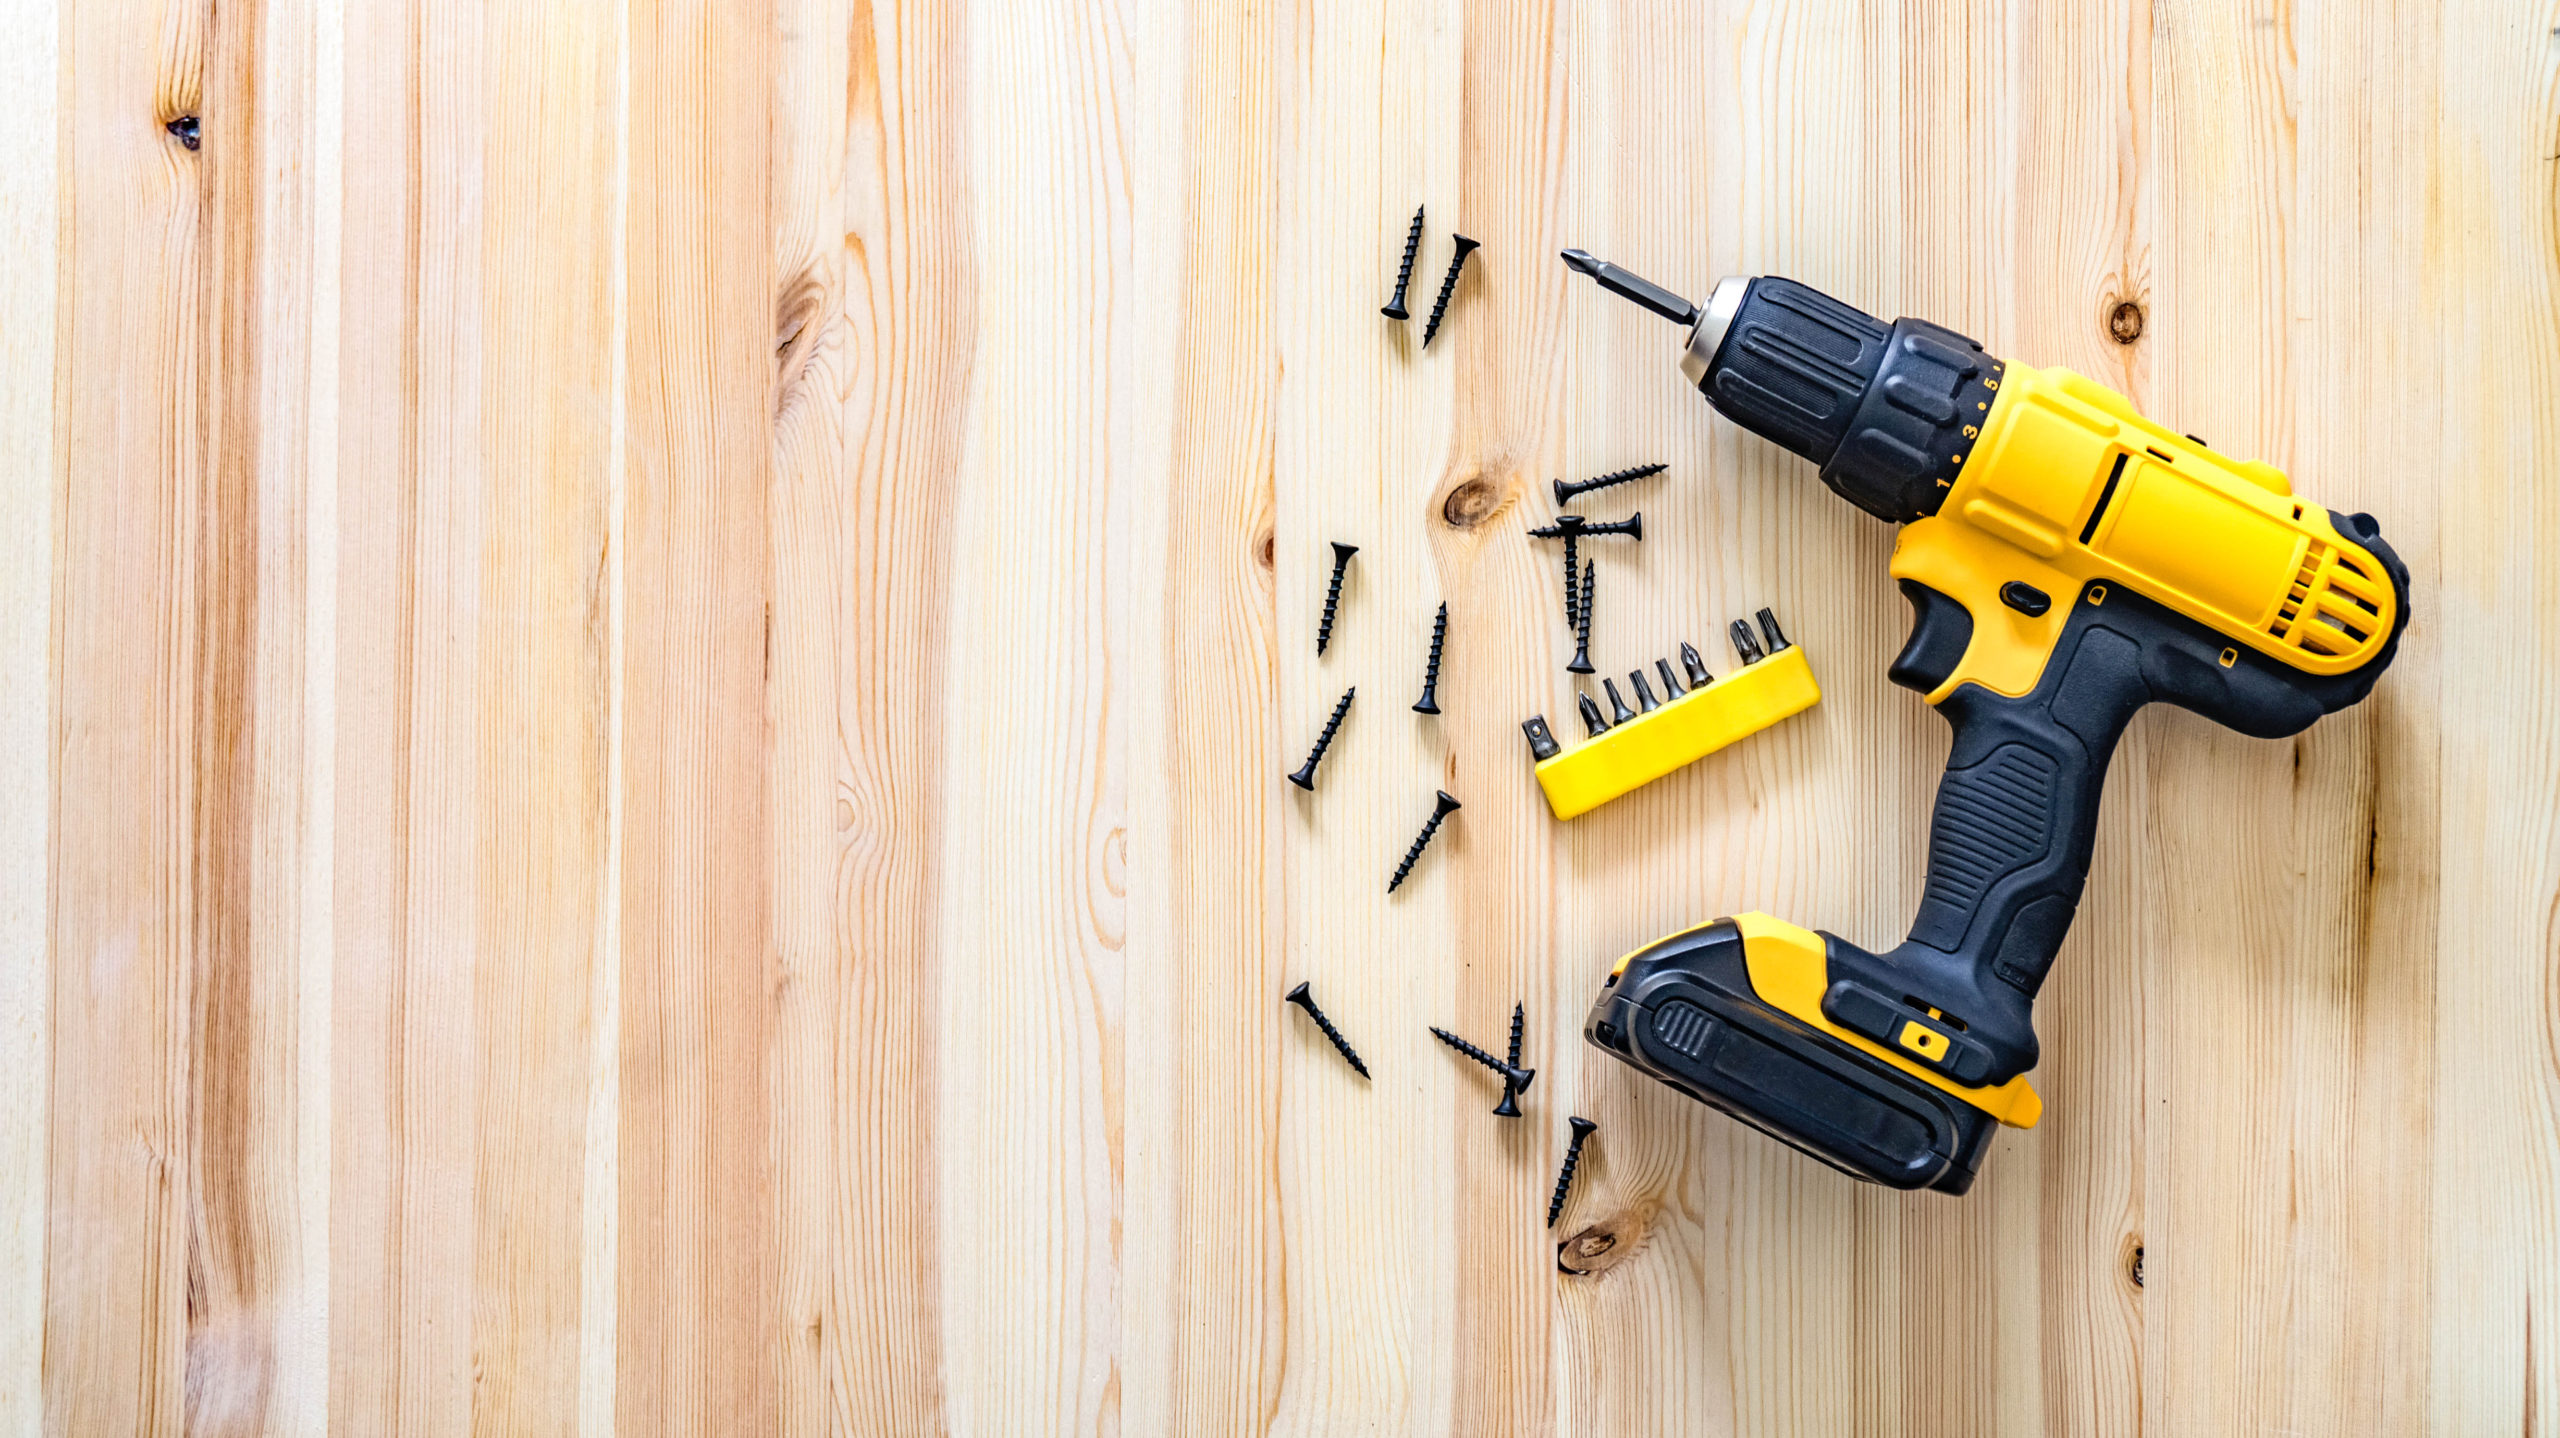 Powerful Cordless Drill